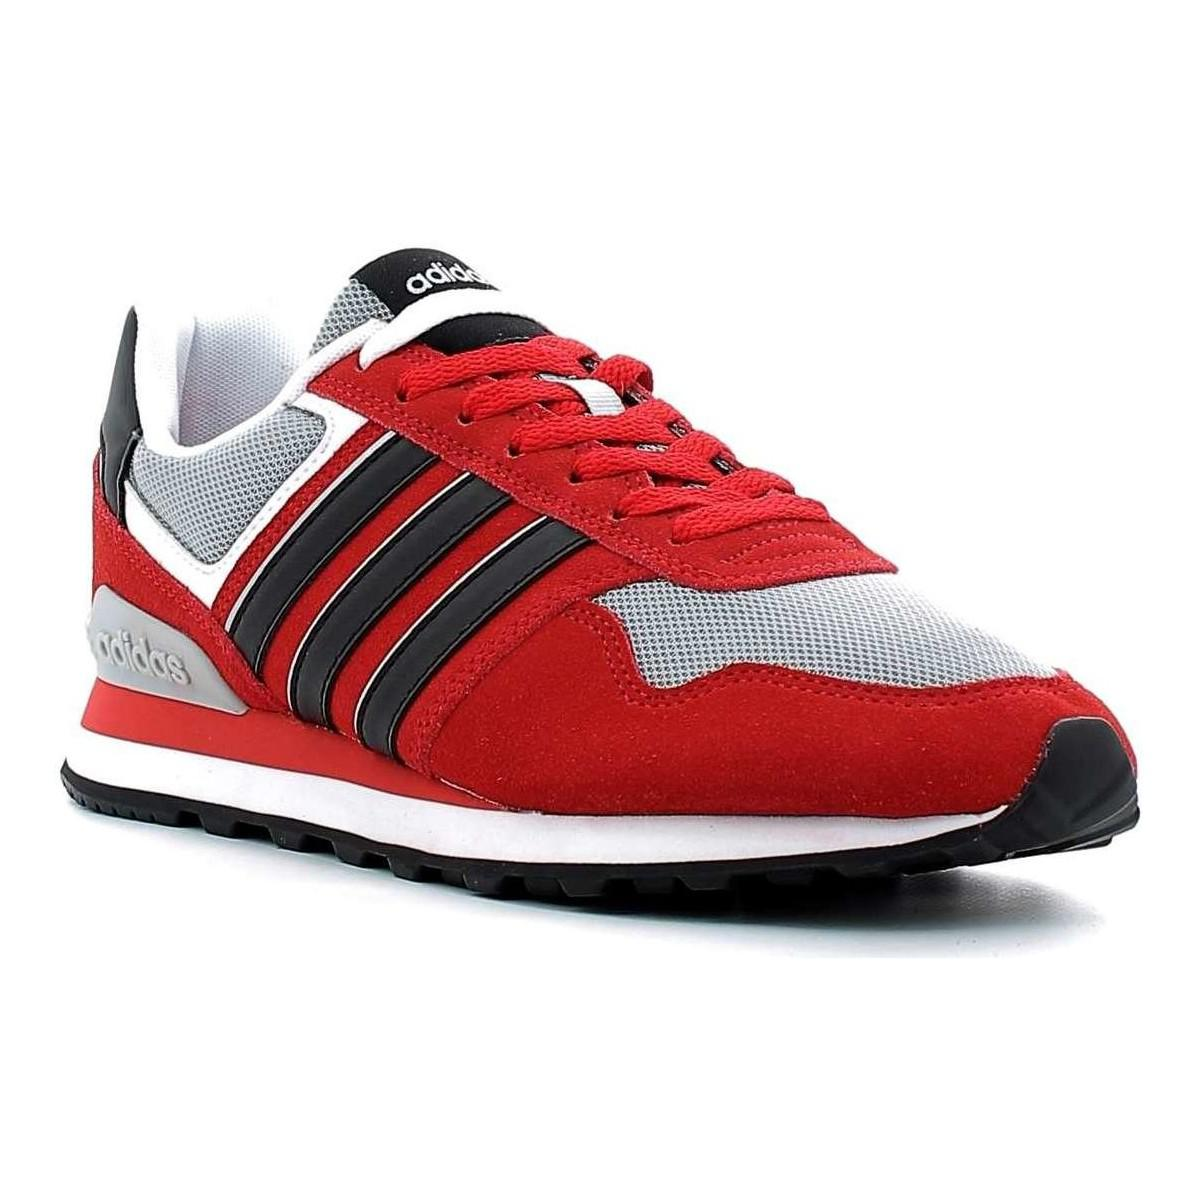 adidas Aw3849 Sneakers Man Red Men's Shoes (trainers) In Red